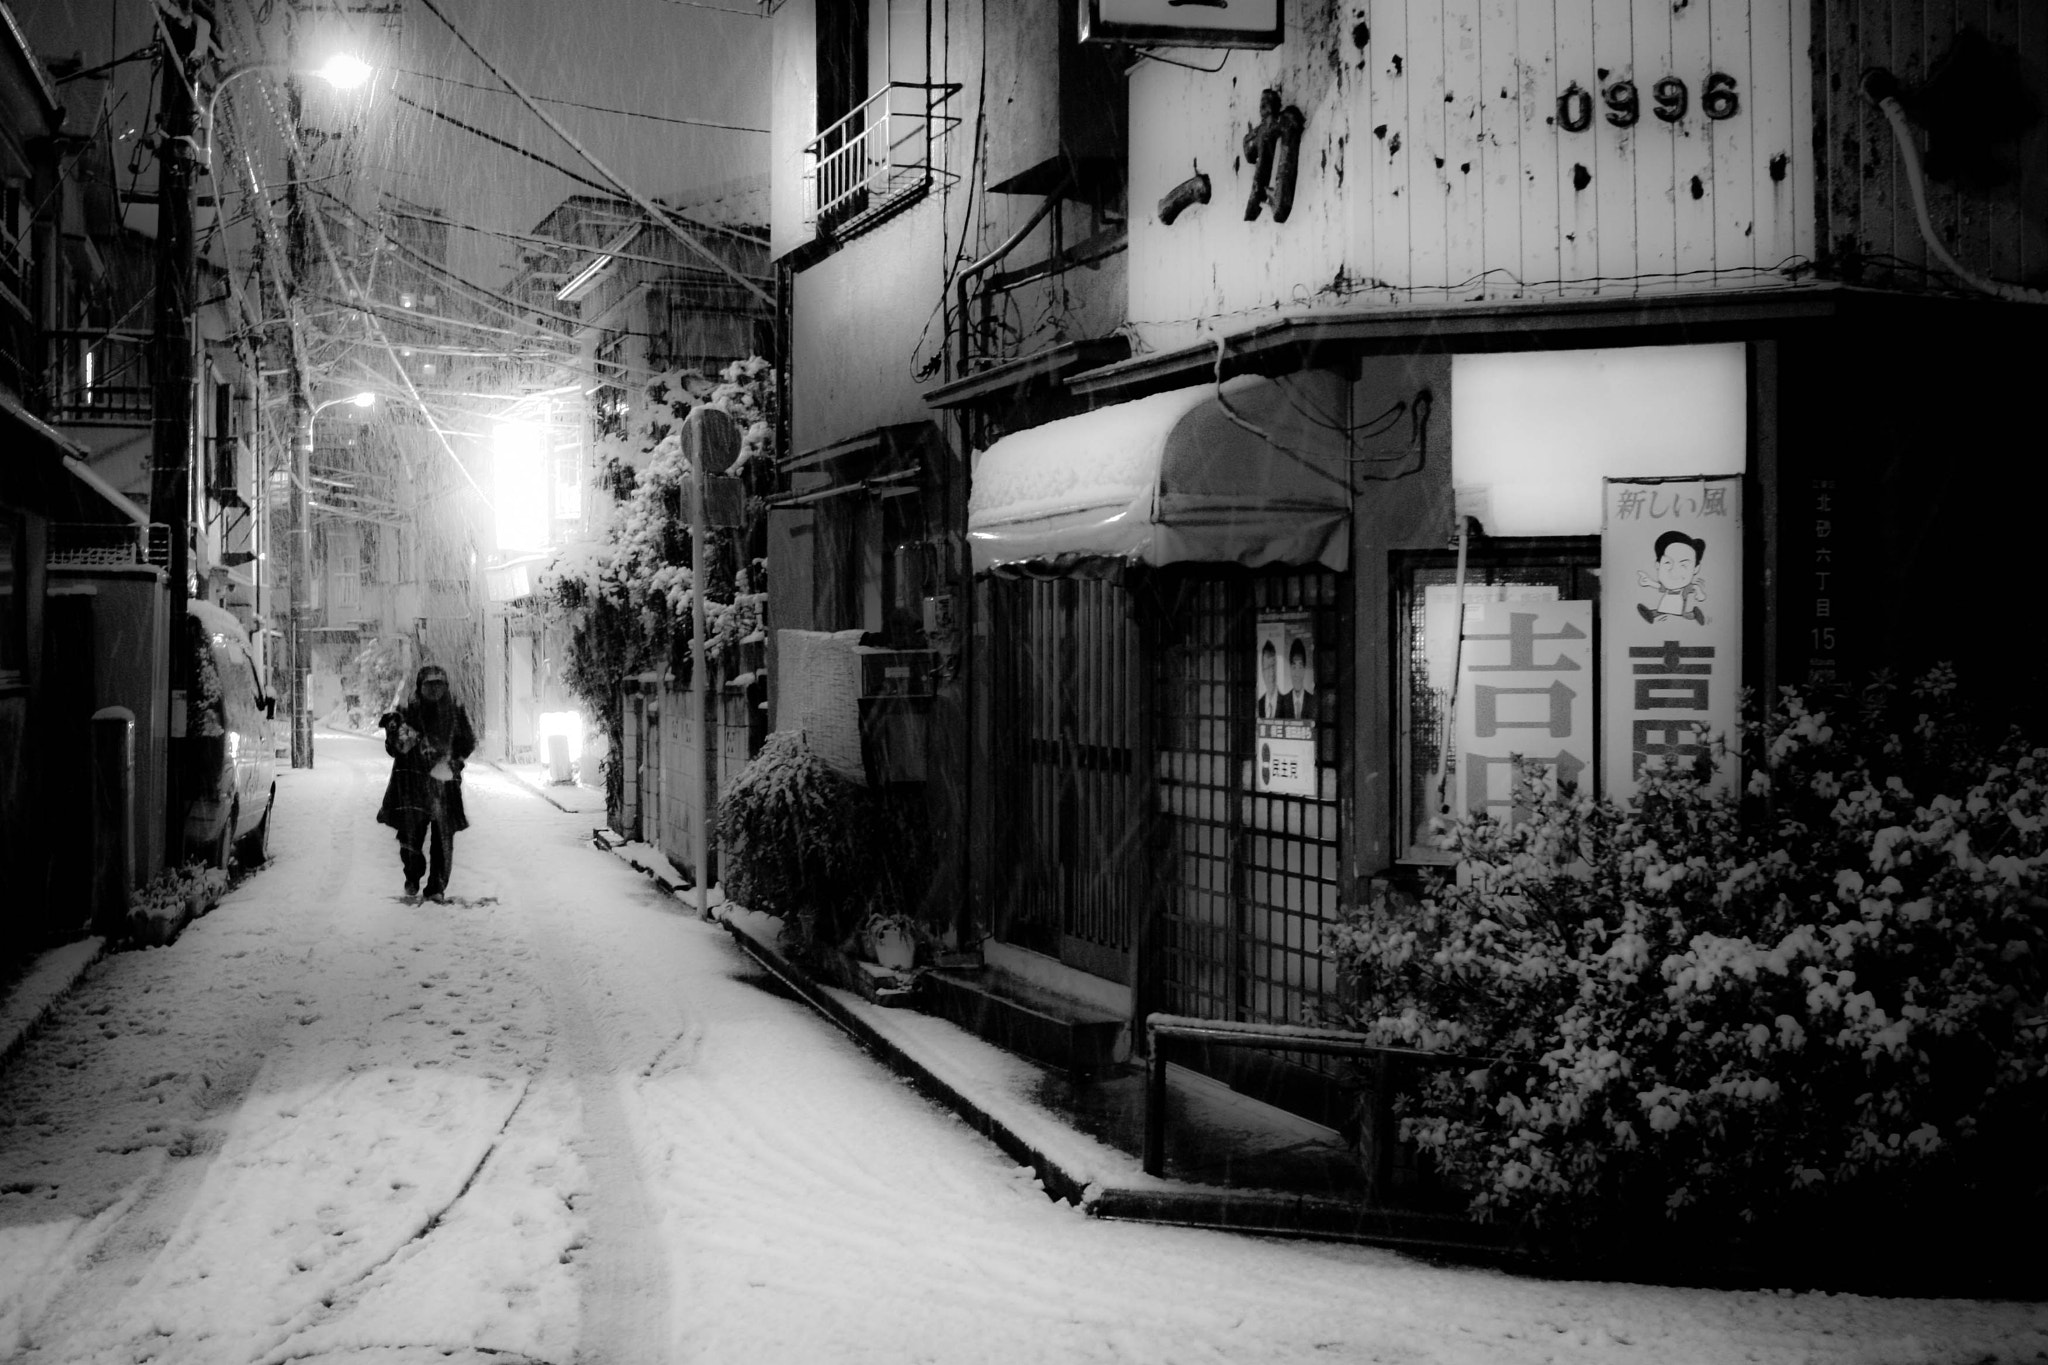 Photograph Tokyo Snow by Chris Gilloch on 500px